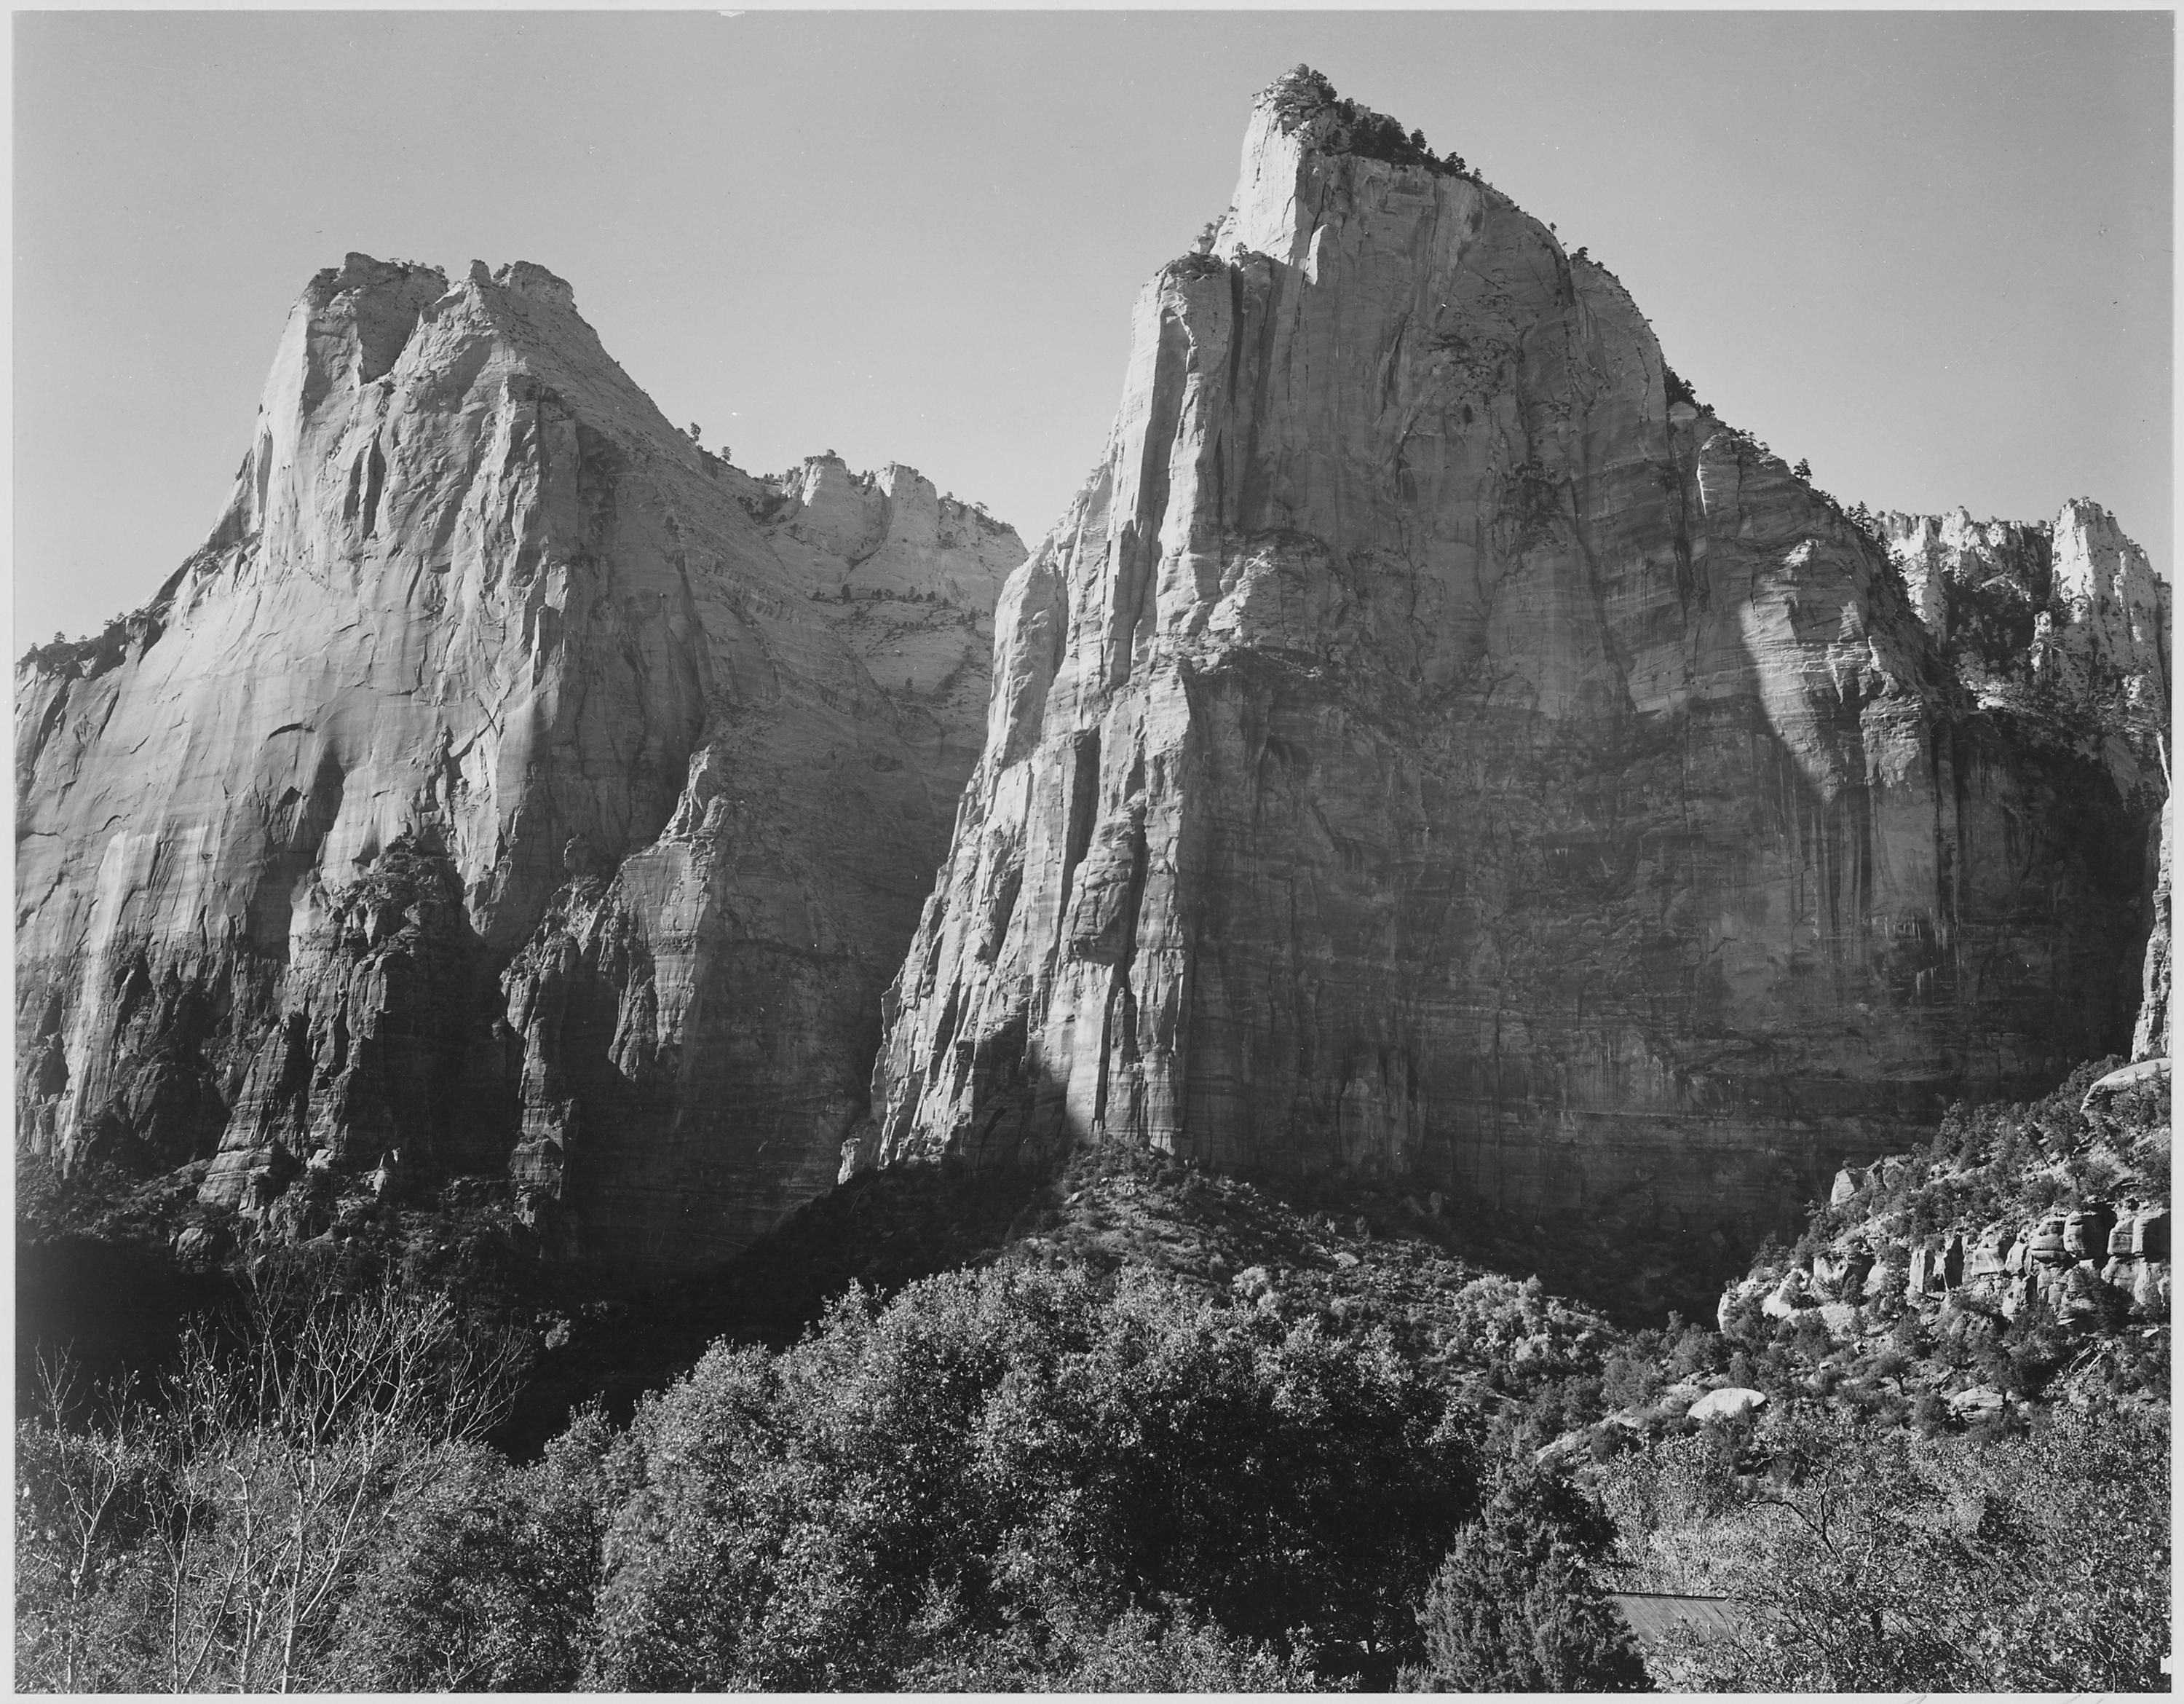 Ansel Adams National Archives 79 AA V01 3 000—2 340 pixels